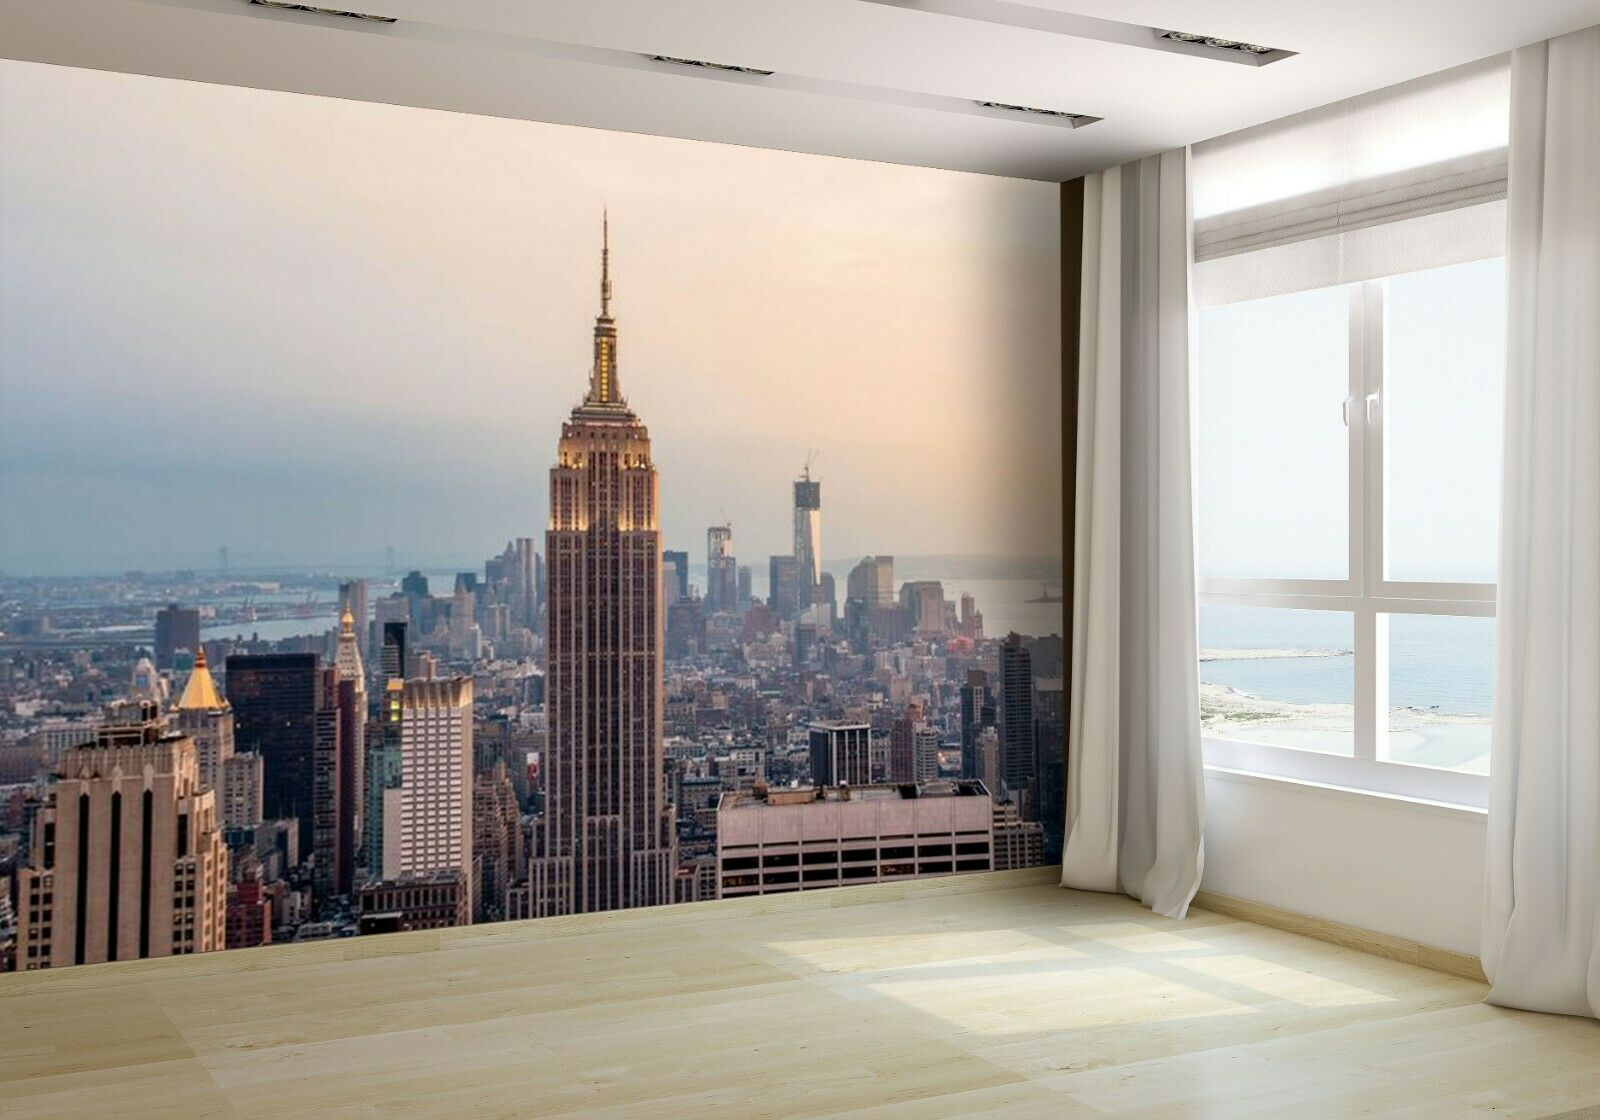 New York Skyline with Skyscrapers Wallpaper Mural Photo 18166706 budget paper